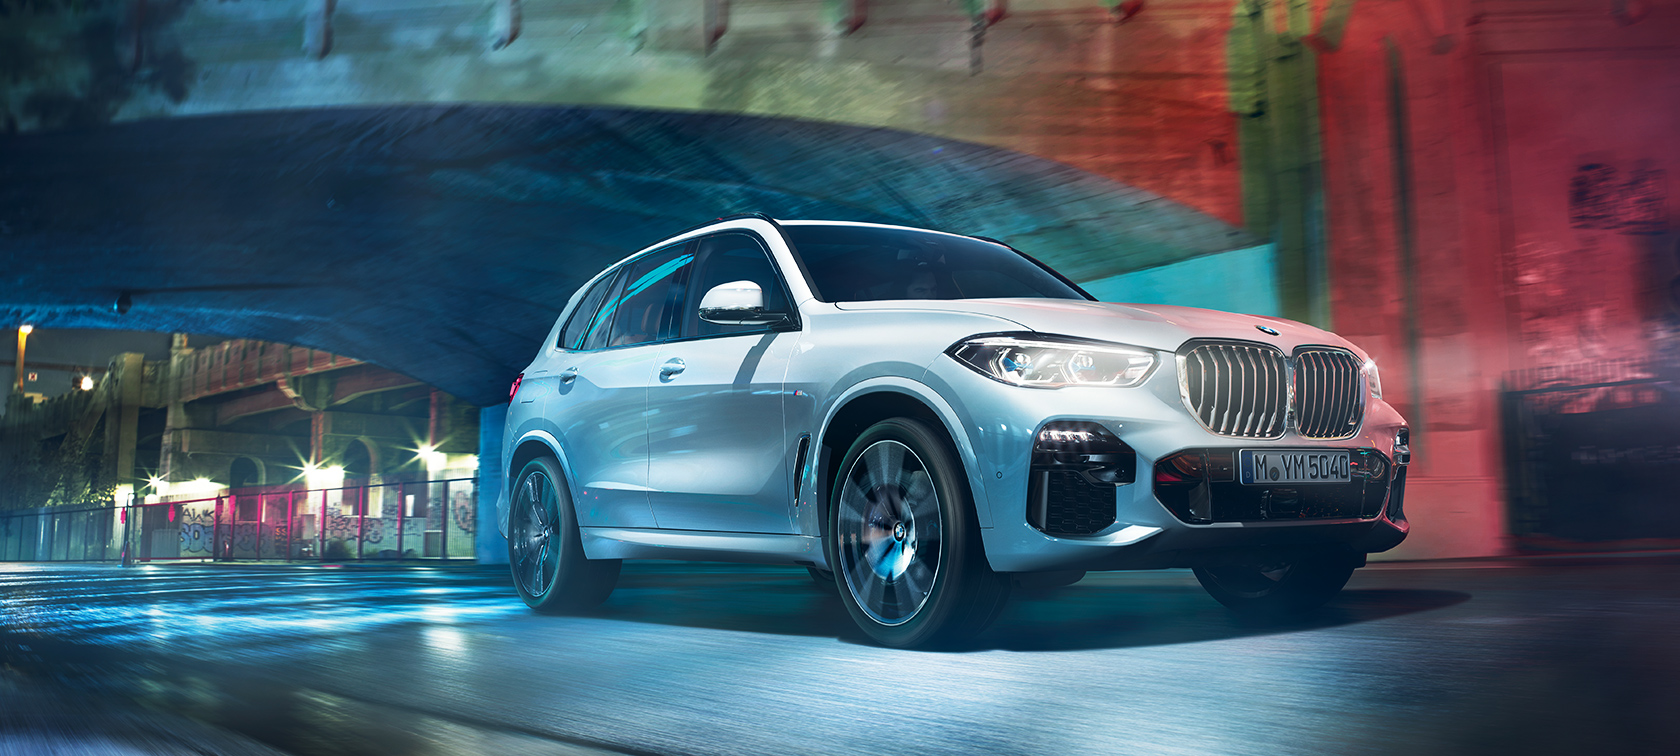 Driving shot of the BMW X5 at night in an urban setting